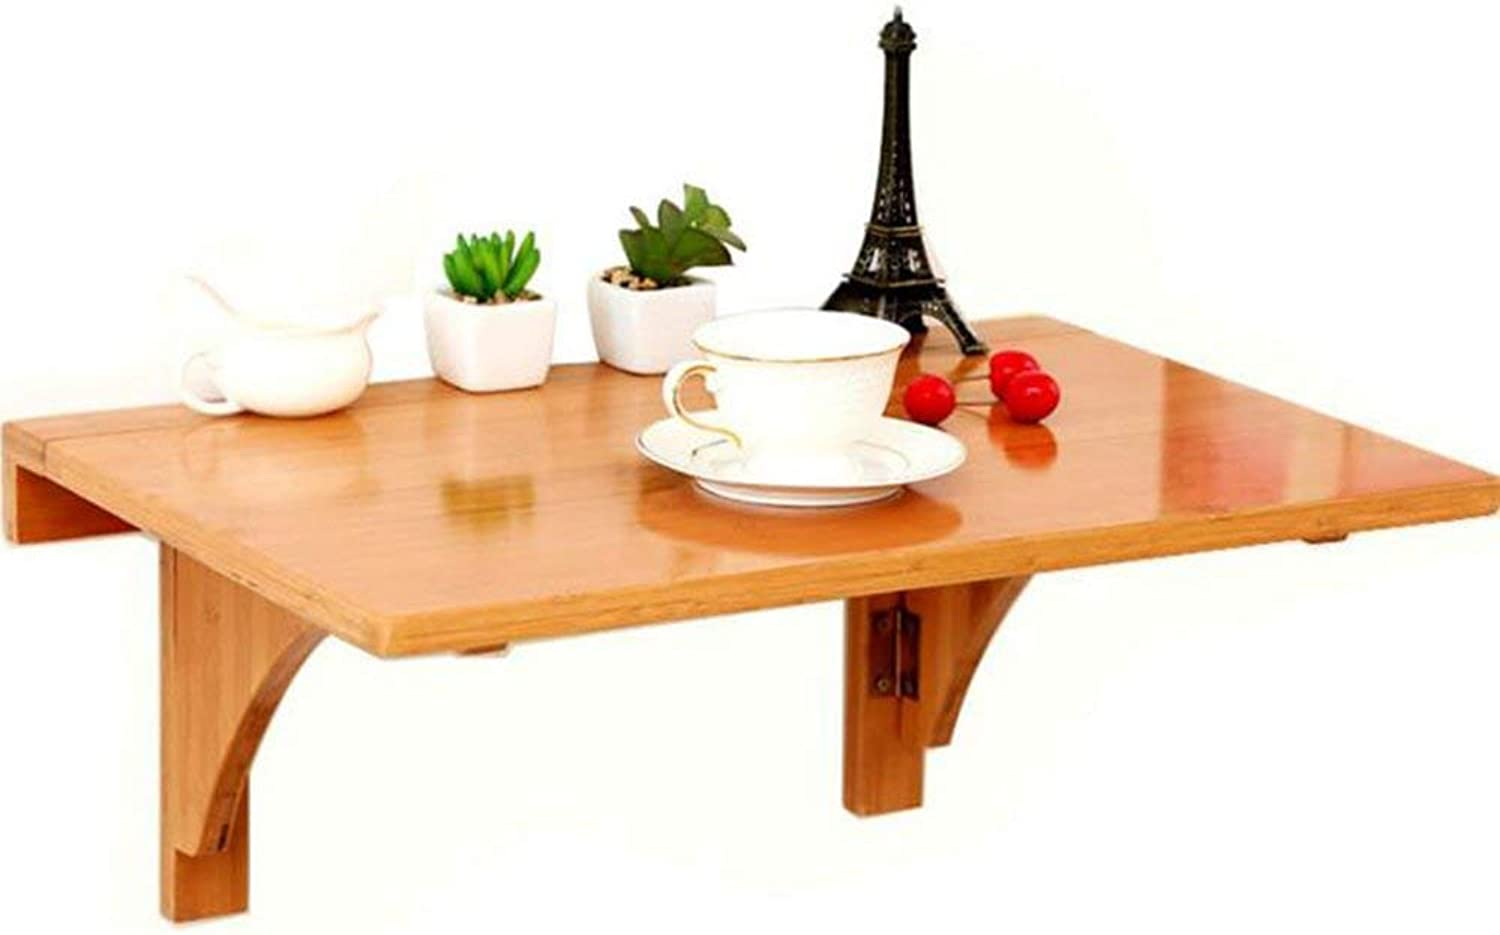 Table Wall-Mounted Drop-Leaf Folding, Original Bamboo Rounded Edge Design in 6 Sizes Computer Desk, ChuanHan